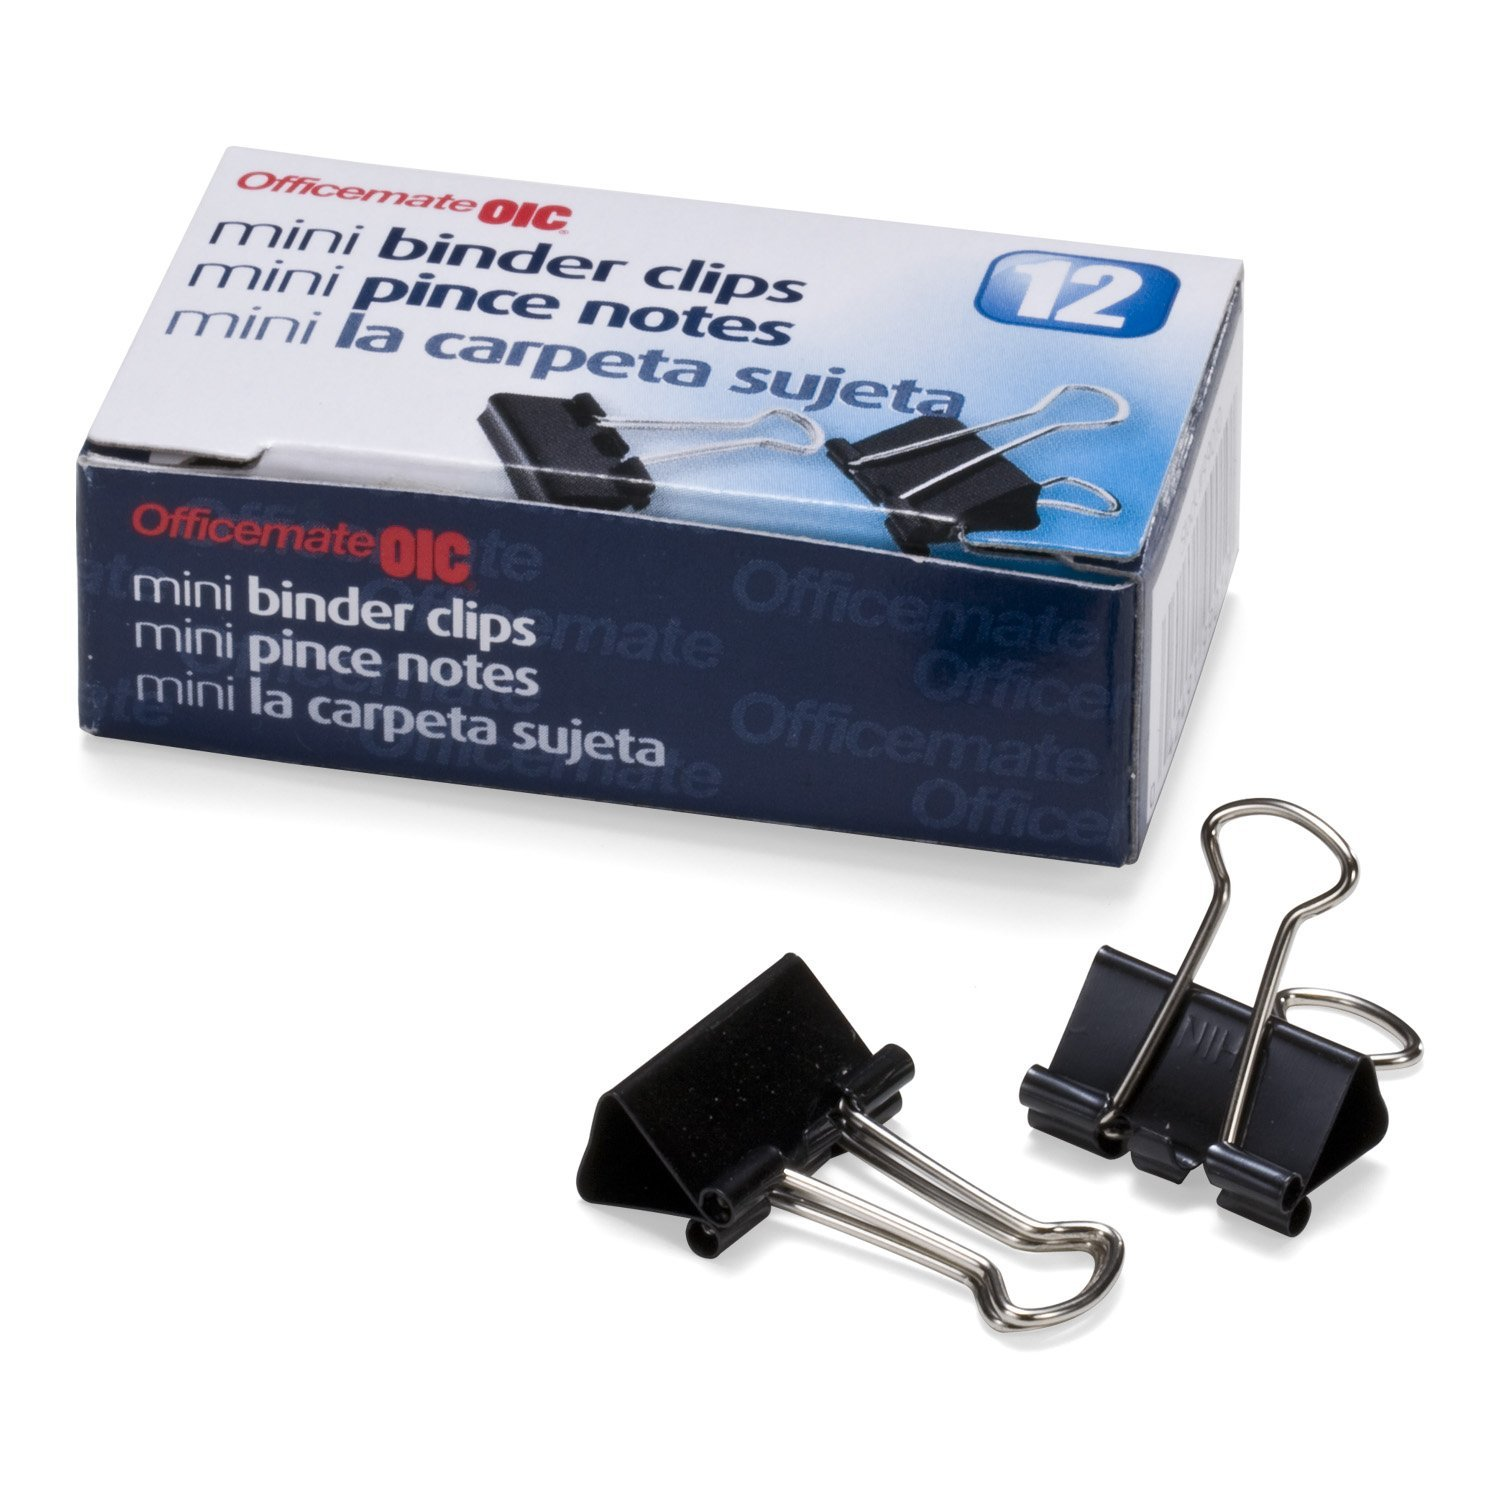 Officemate OIC Mini Binder Clips, Black, 576 Pack (48 Boxes of 1 Dozen Each) (99010) by Officemate